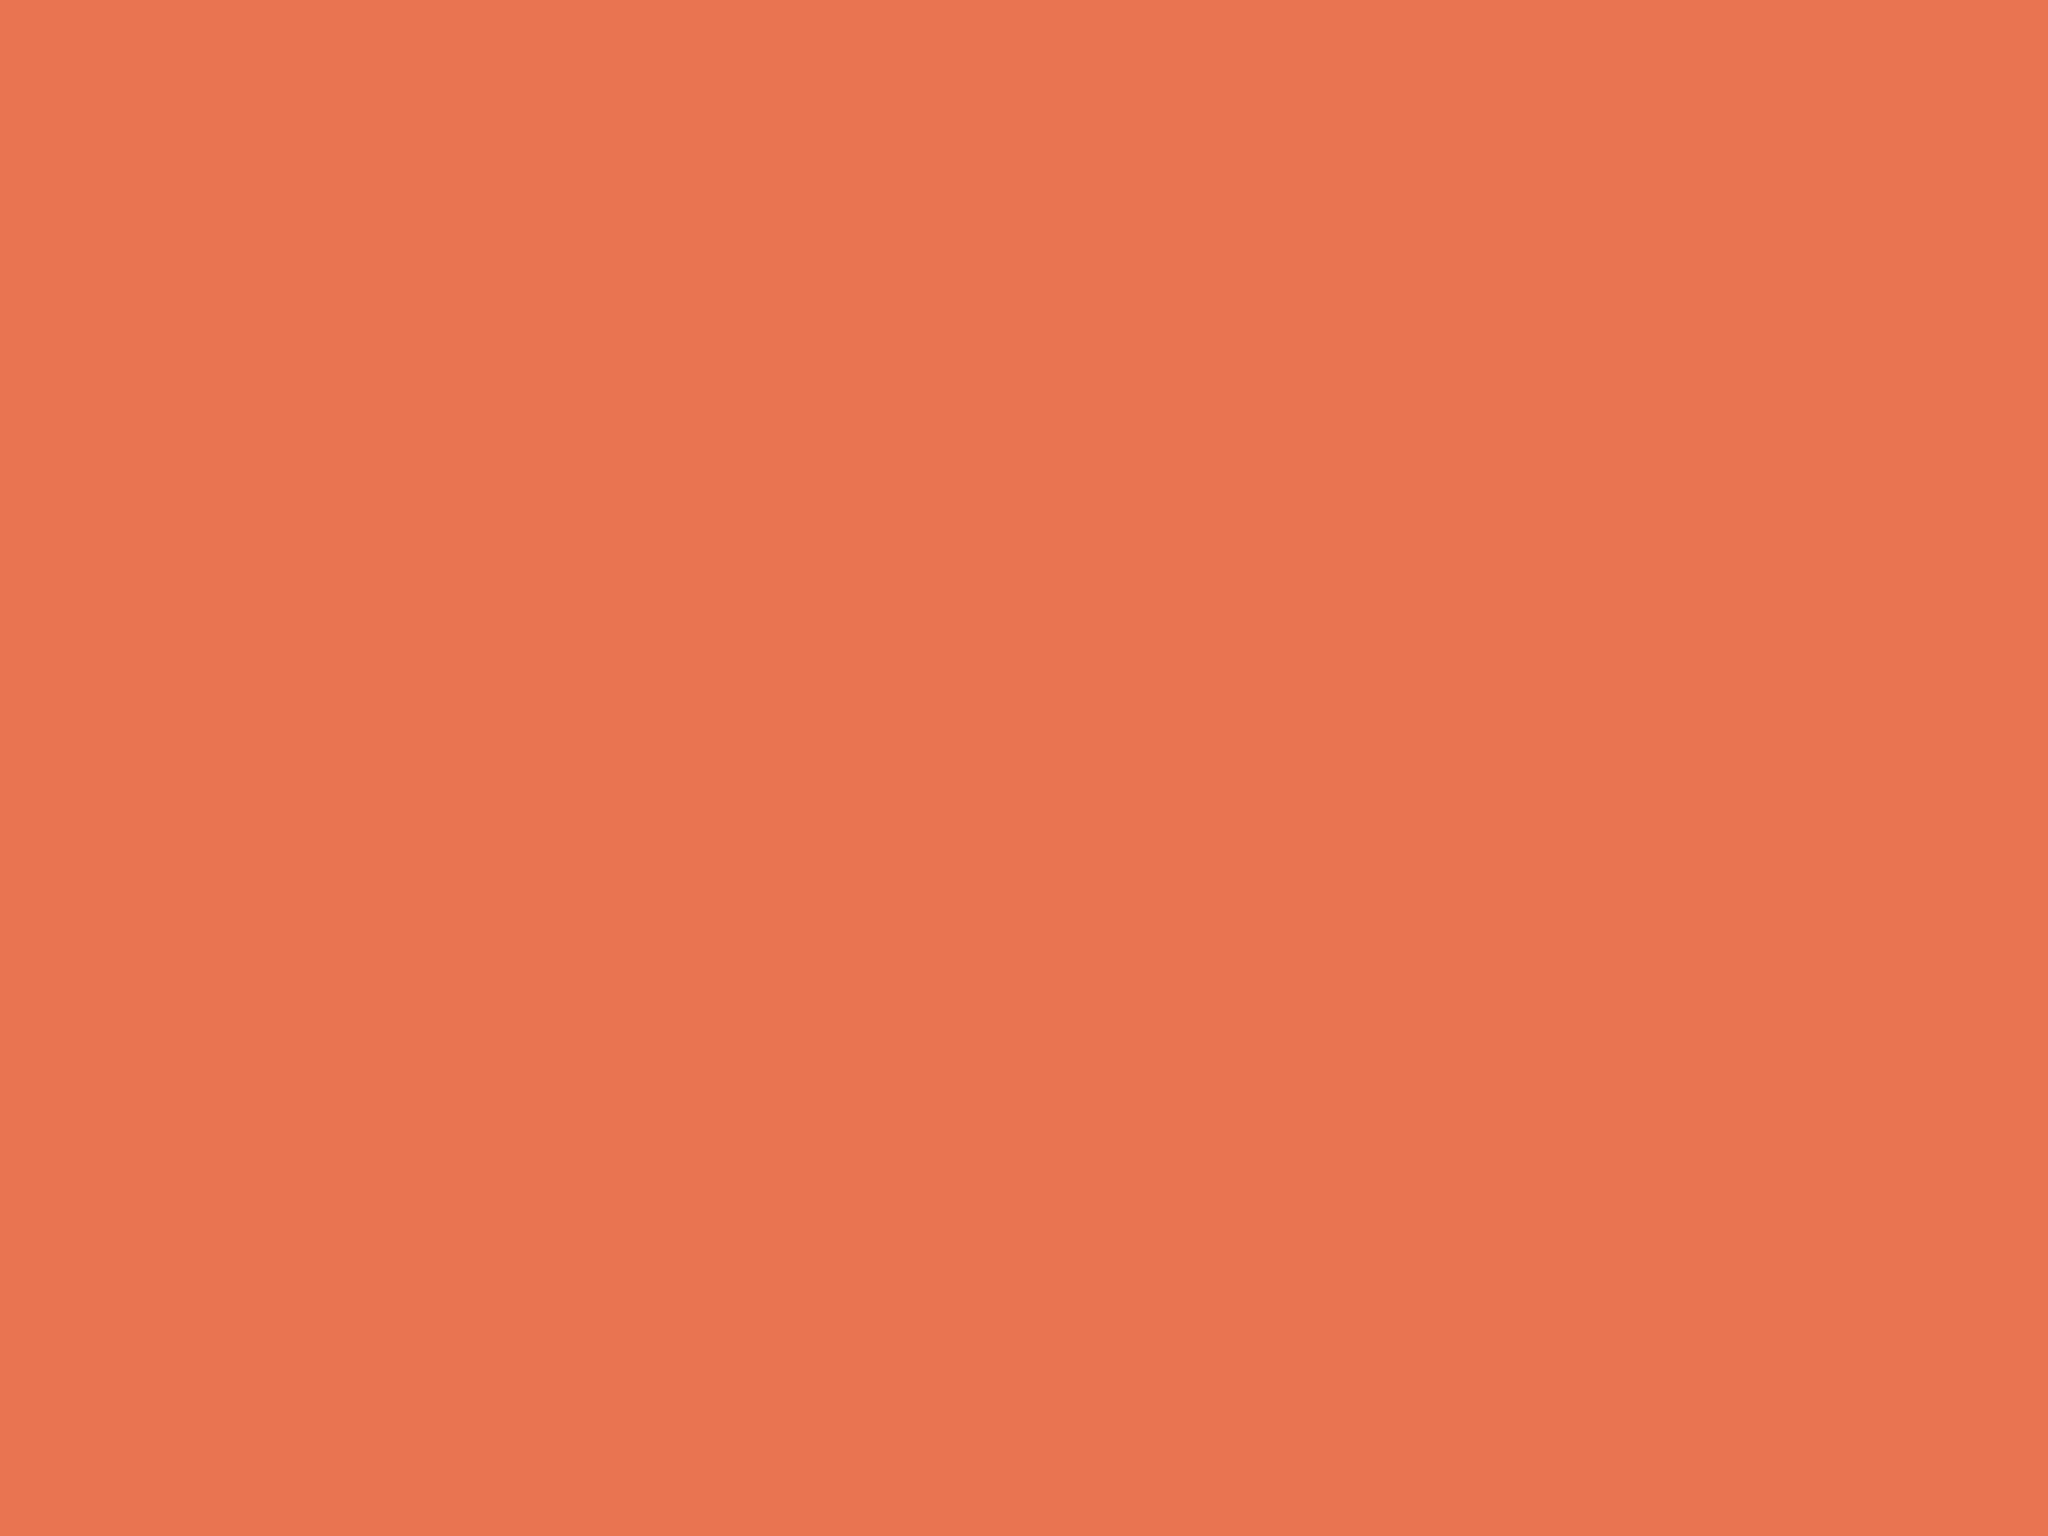 2048x1536 Light Red Ochre Solid Color Background